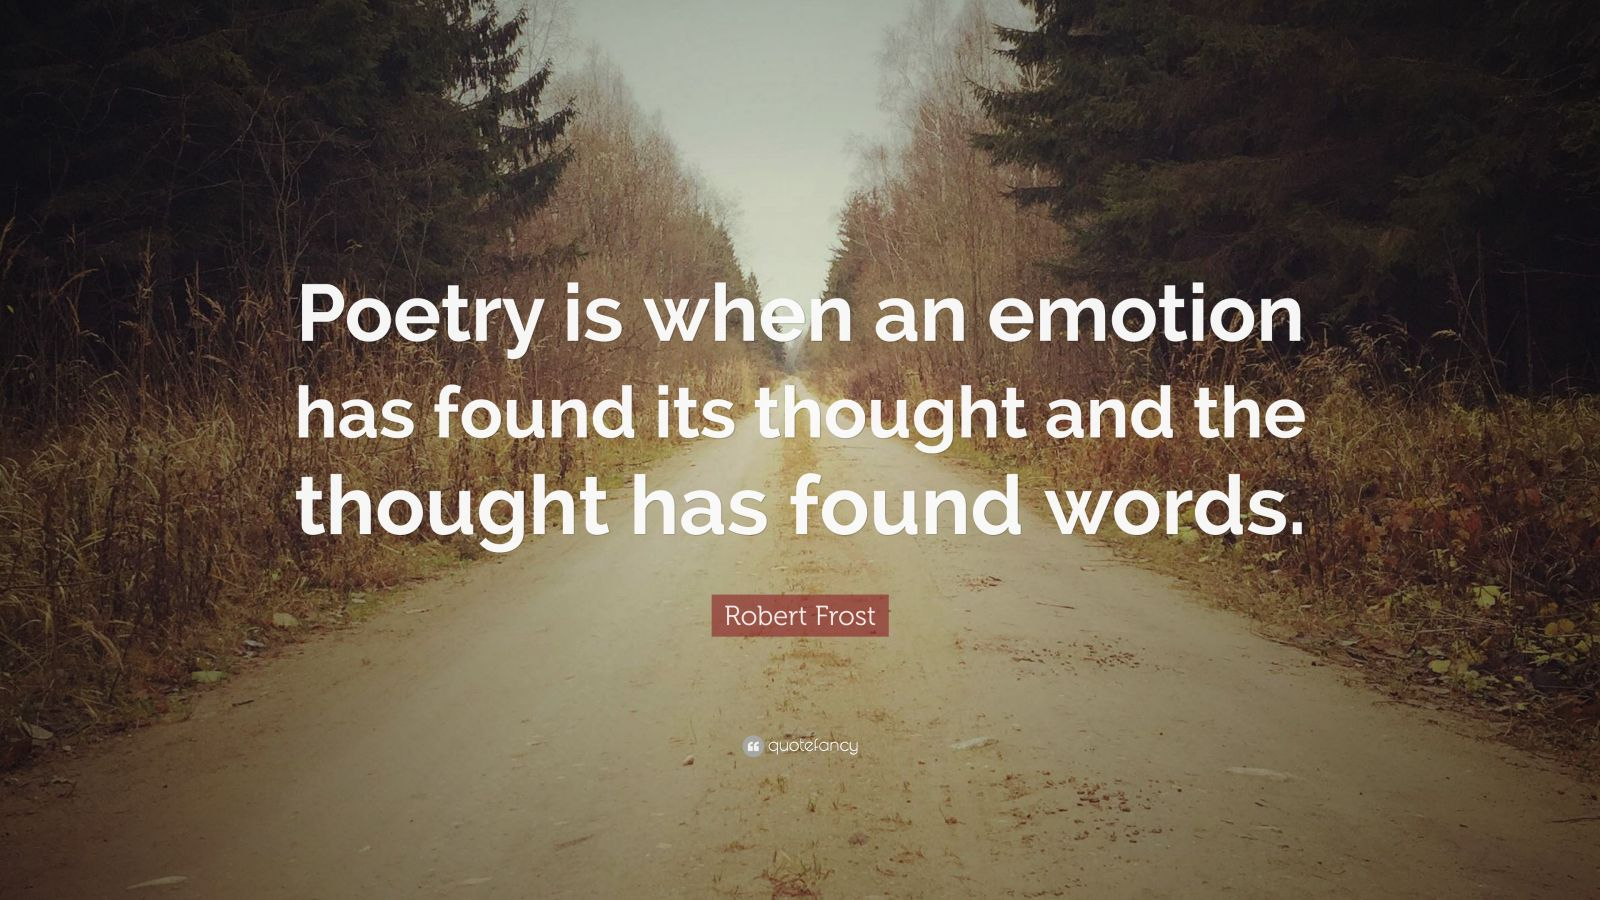 How did Robert Frost's life influence his poetry?